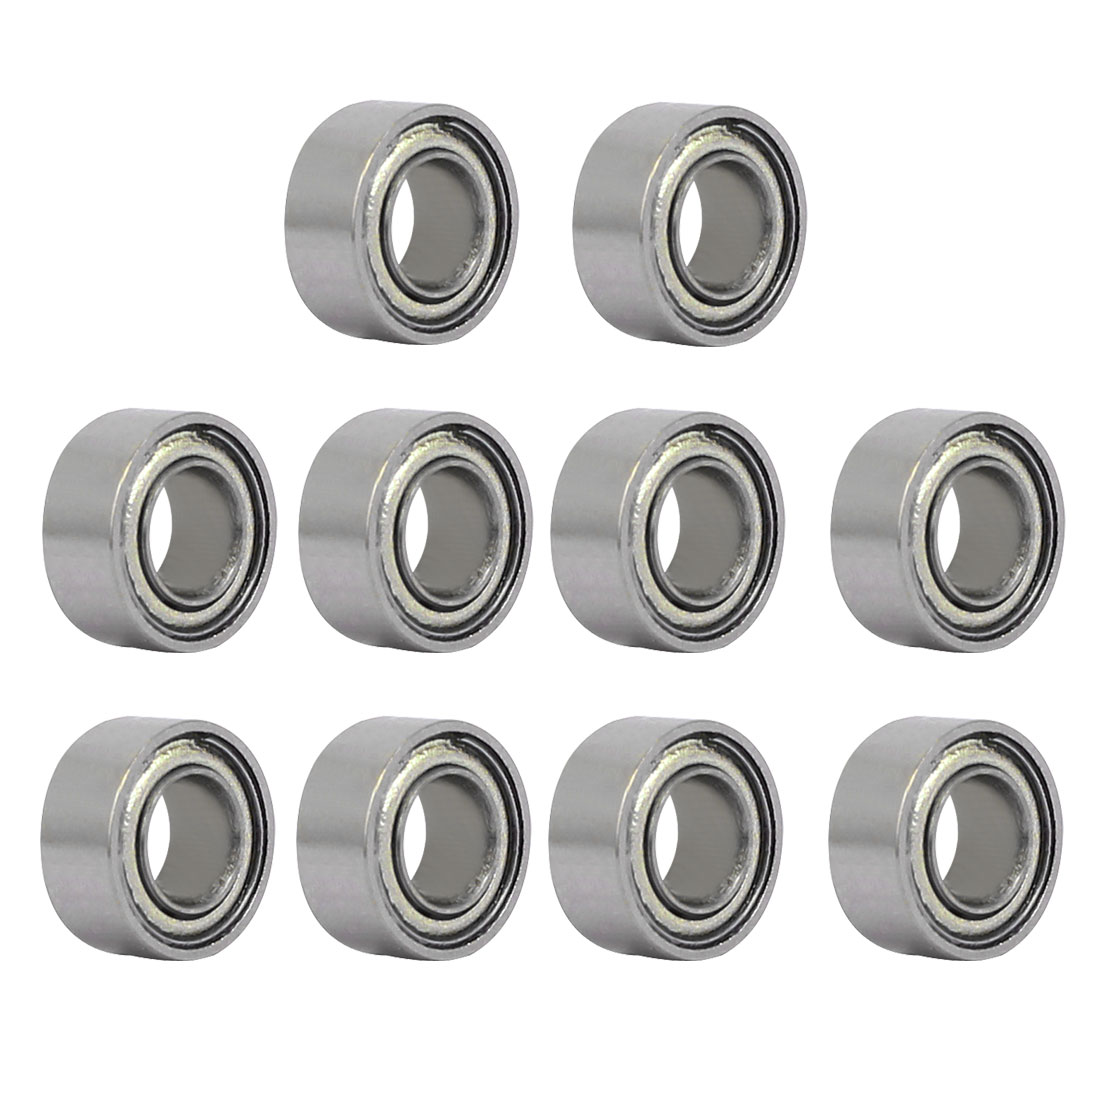 MR63ZZ 6mmx3mmx2.5mm Single Row Double Shielded Deep Groove Ball Bearings 10pcs